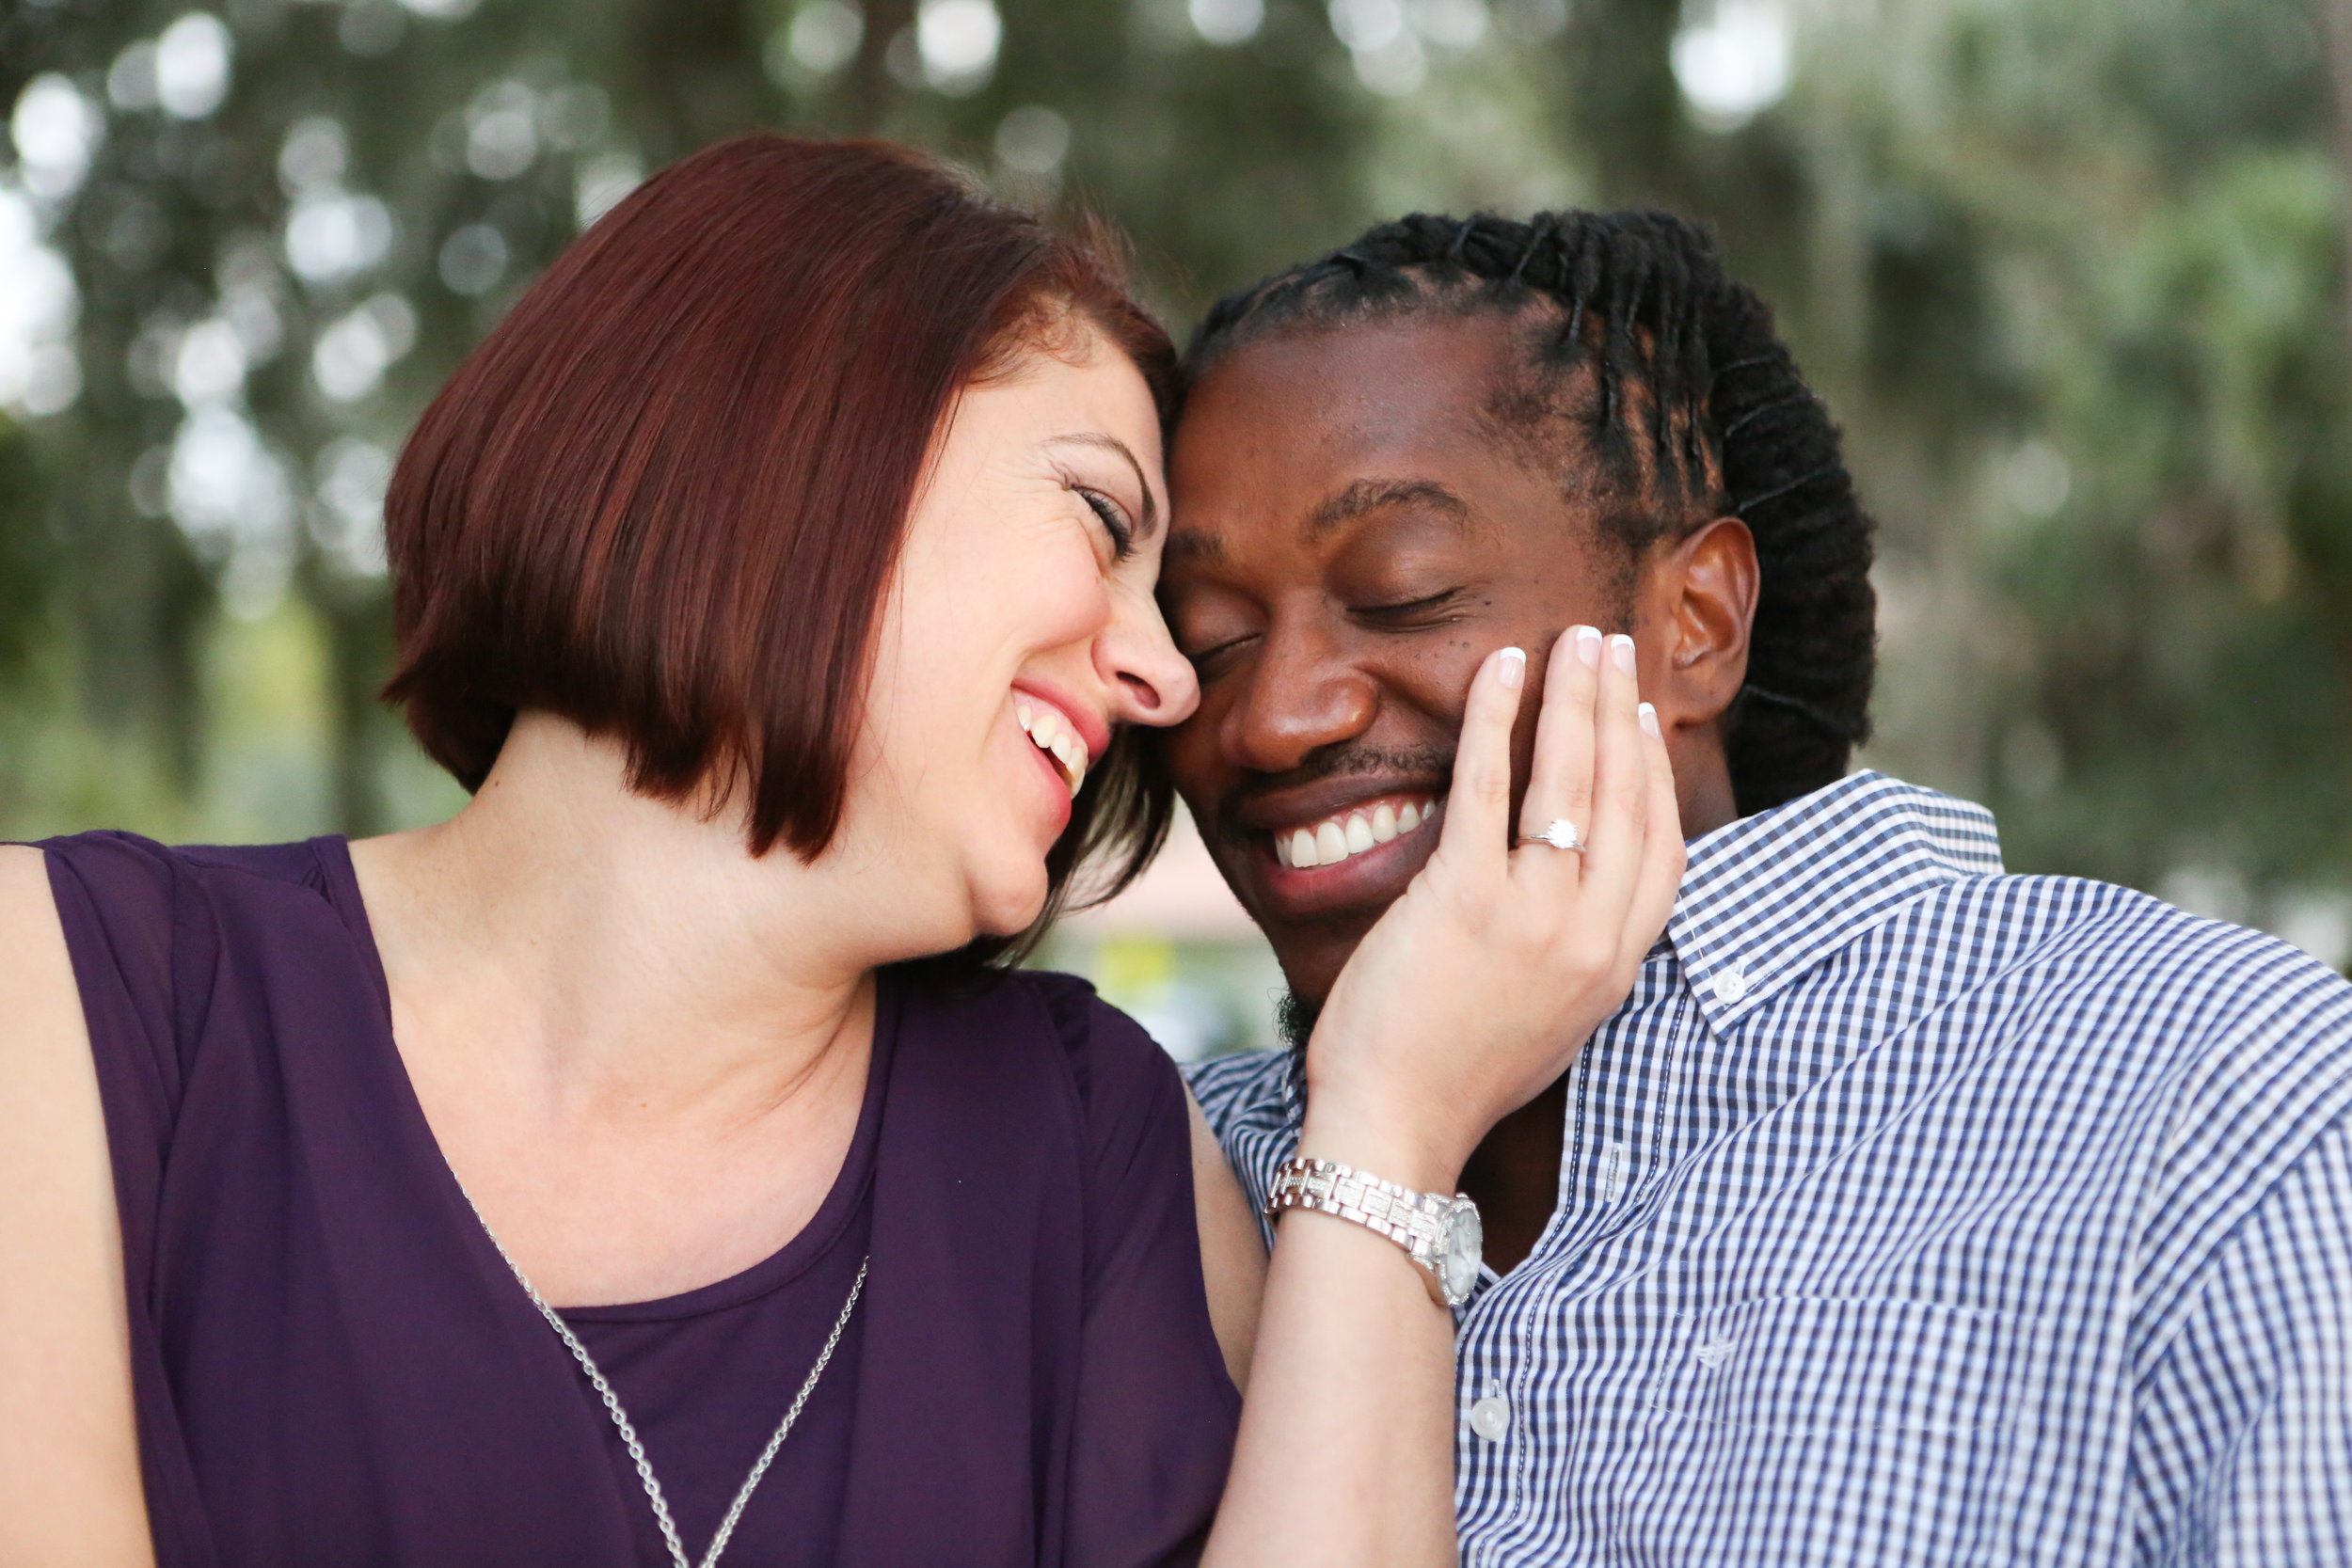 orlando-wedding-photographer-engagement-session-photography-closeup.jpg